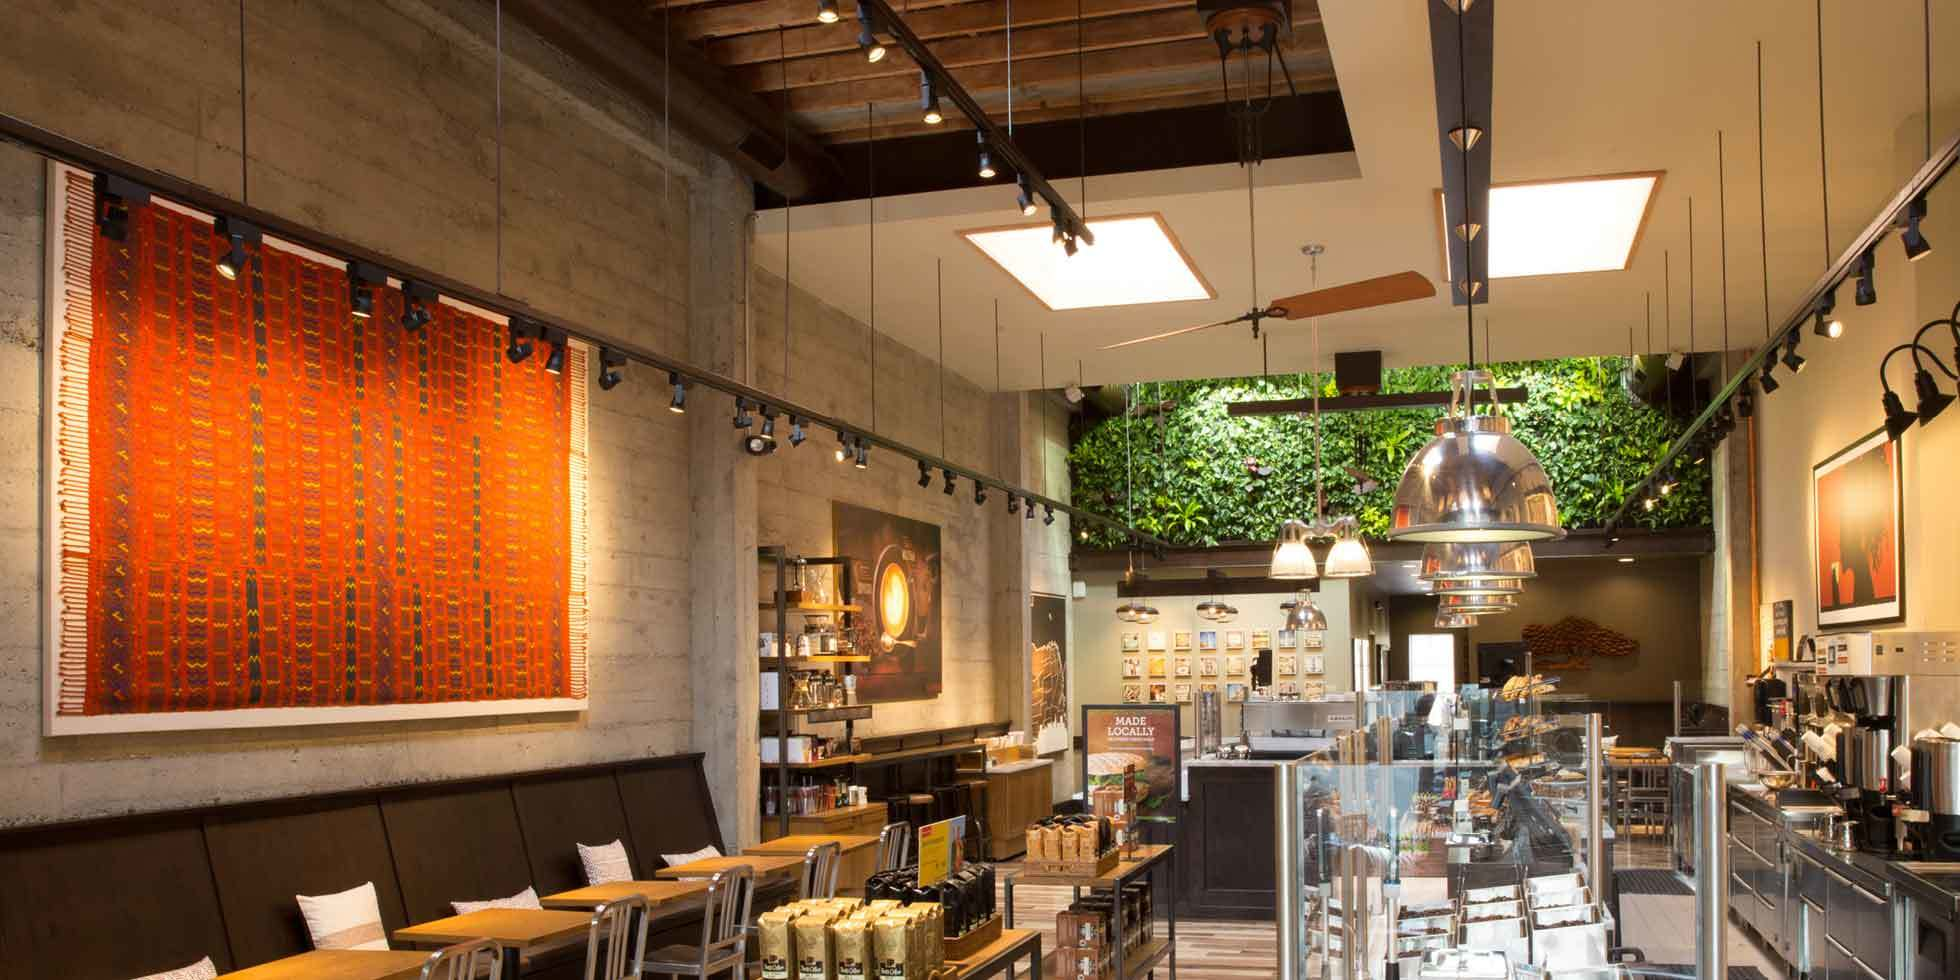 Peet's Coffee & Tea Living Wall by Habitat Horticulture - View 1